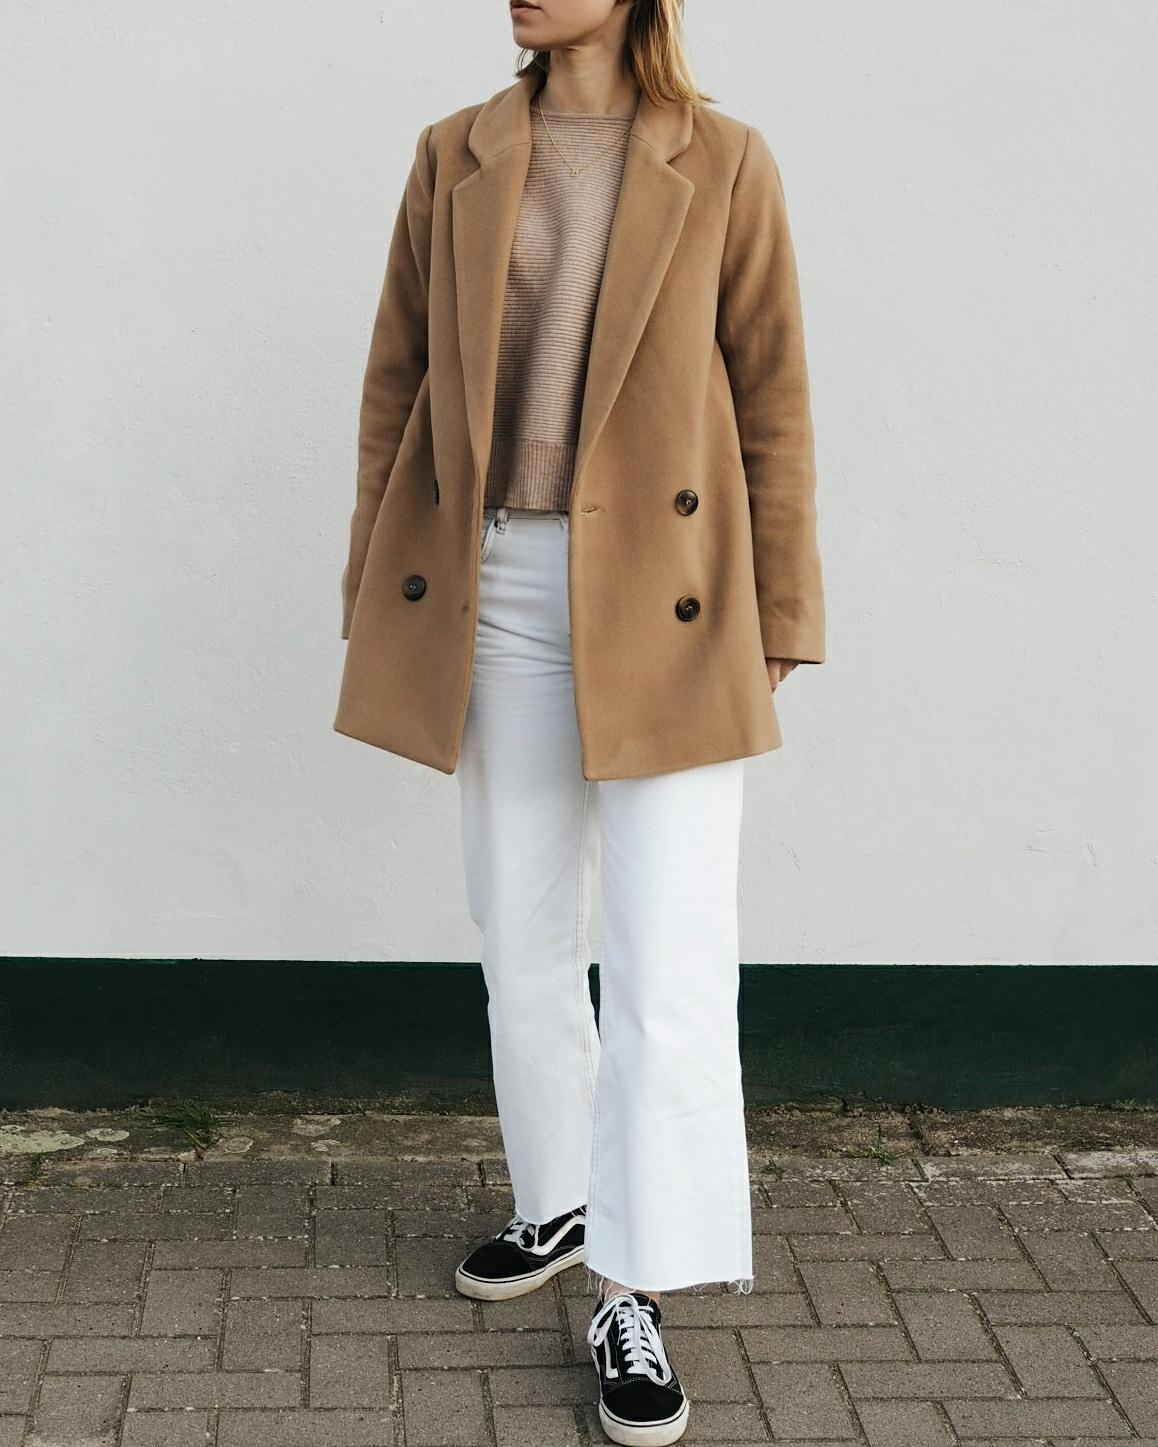 Weiße cropped jeans & camel Blazer 🗯️🐪 #whitedenim #fashion #blazer #neutrals #fashioncrush